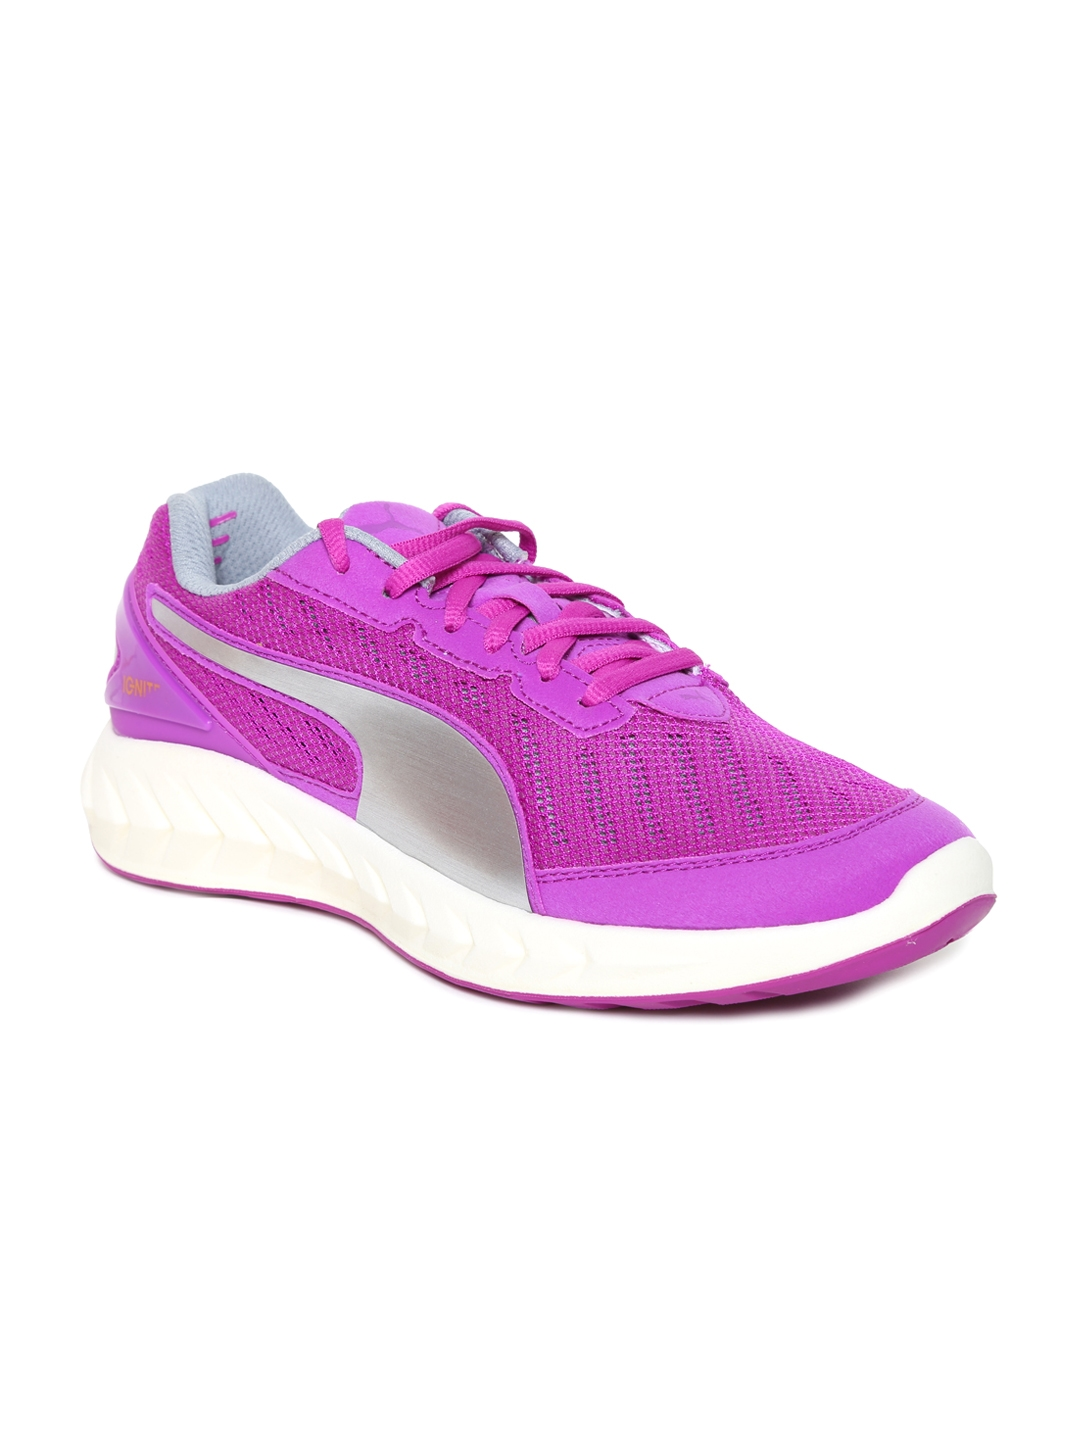 Buy Puma IGNITE Ultimate Women Pink Running Shoes - Sports Shoes for ... bf53c3e75e4c